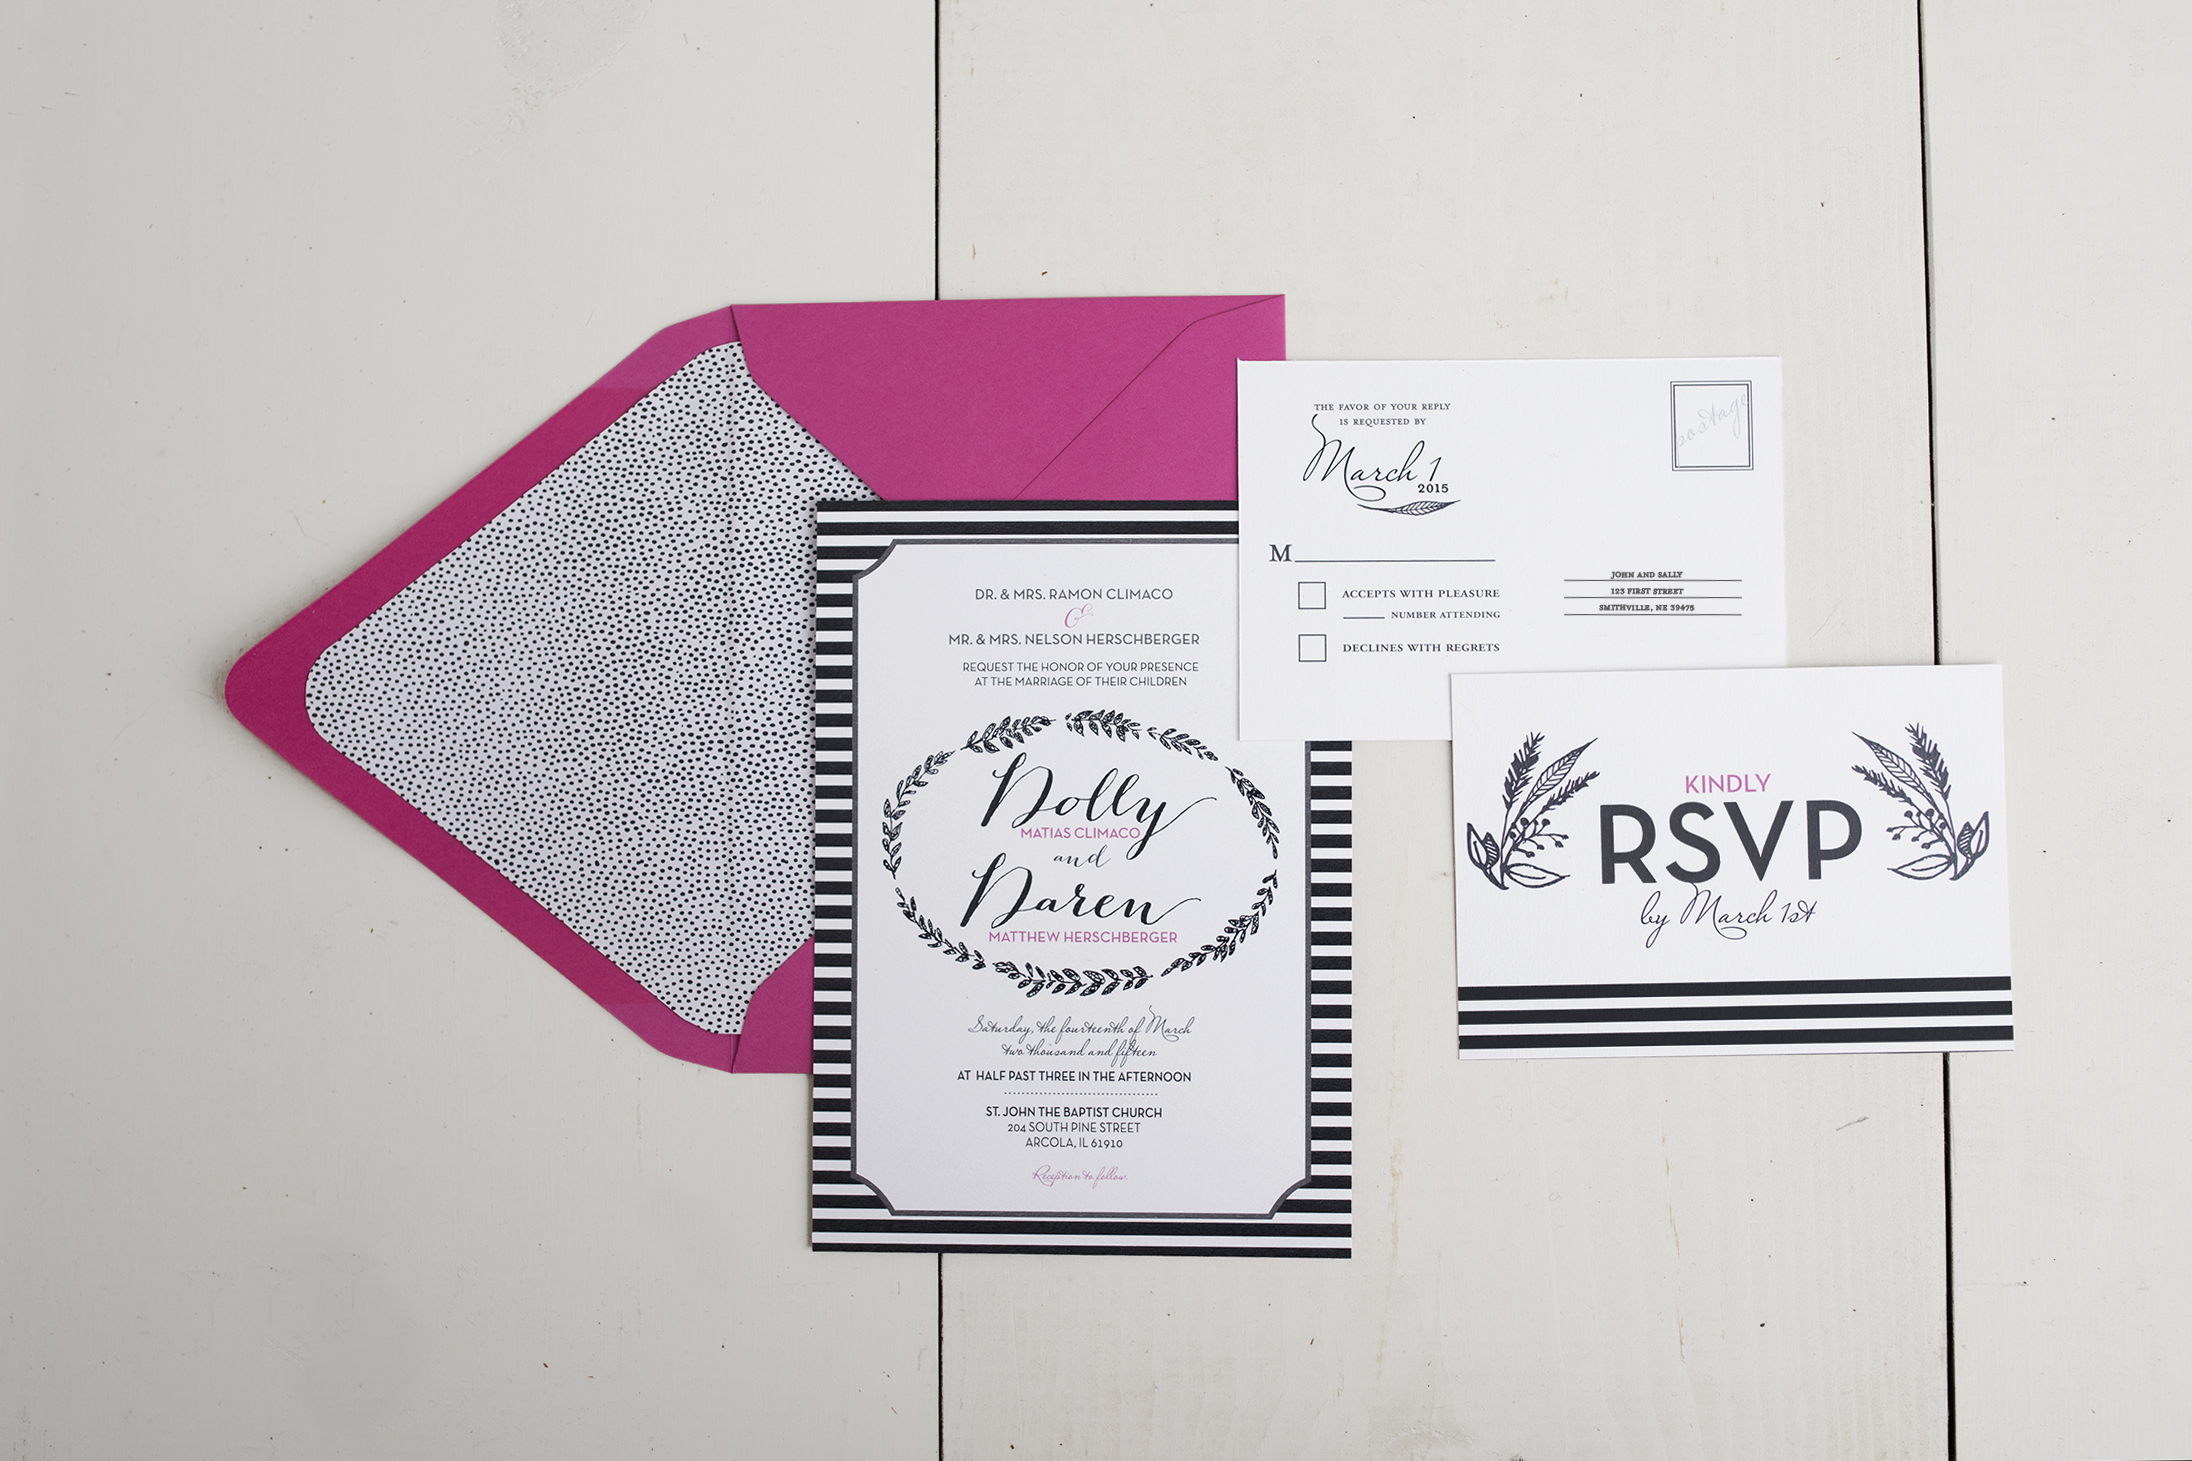 Wedding invitation design kelly graves design wedding invitation design stopboris Choice Image